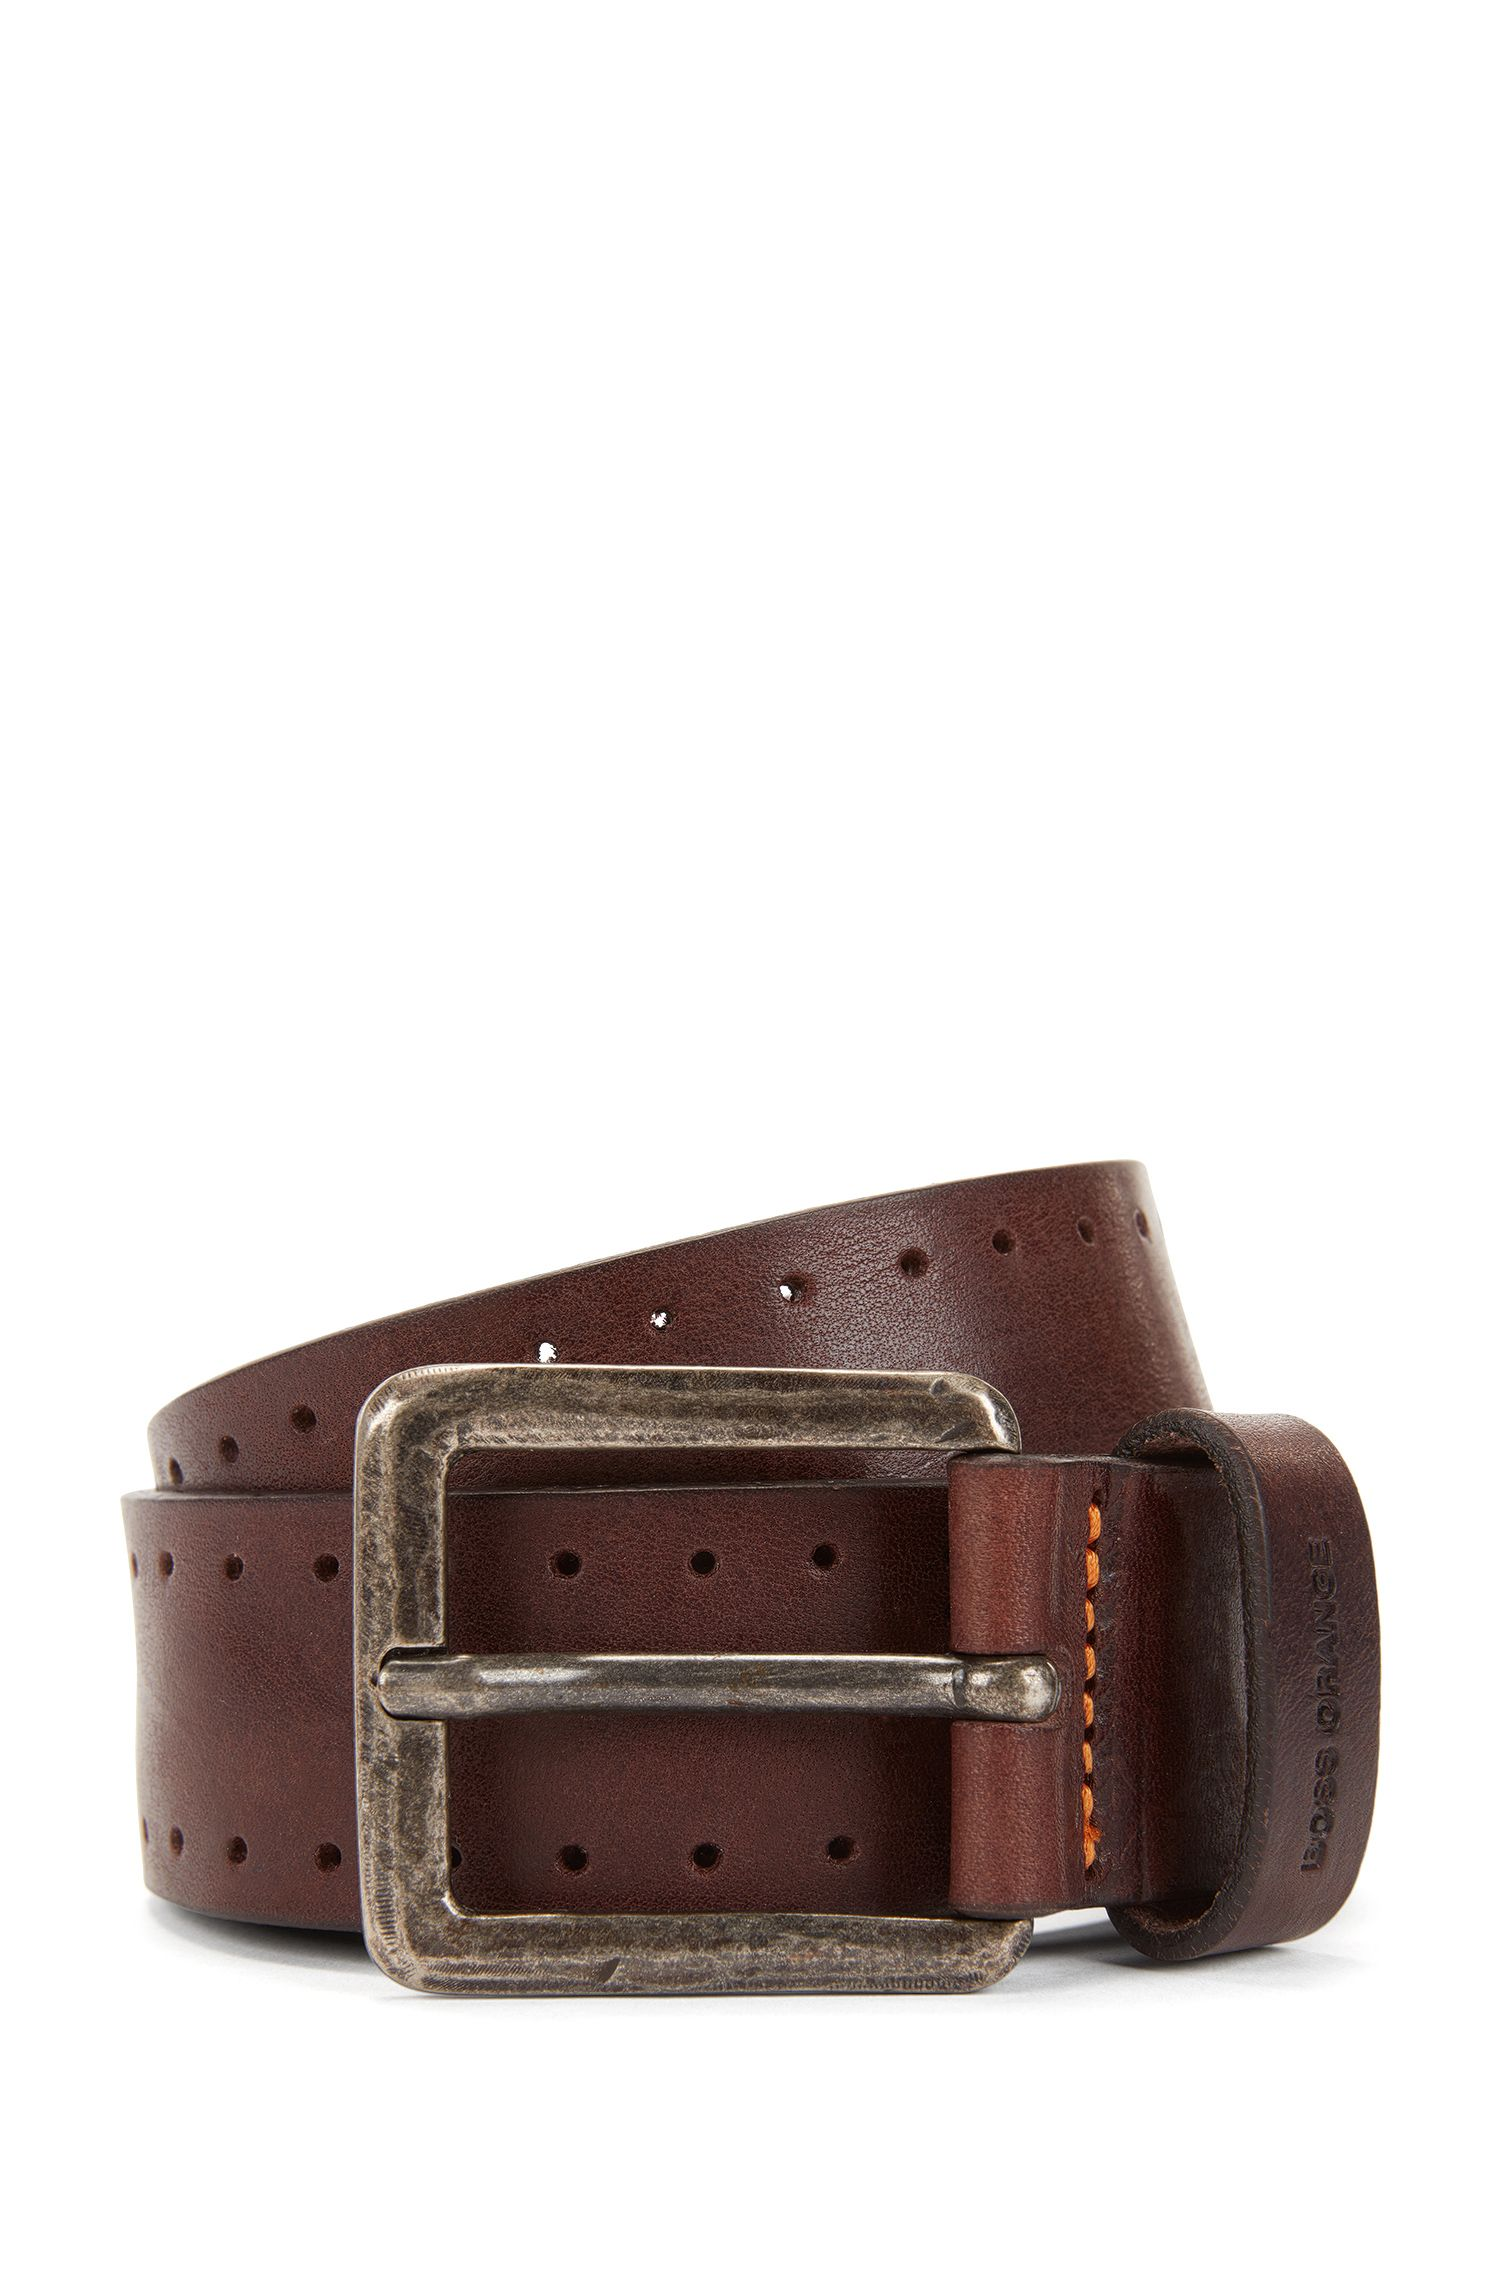 Leather belt with brogue detailing